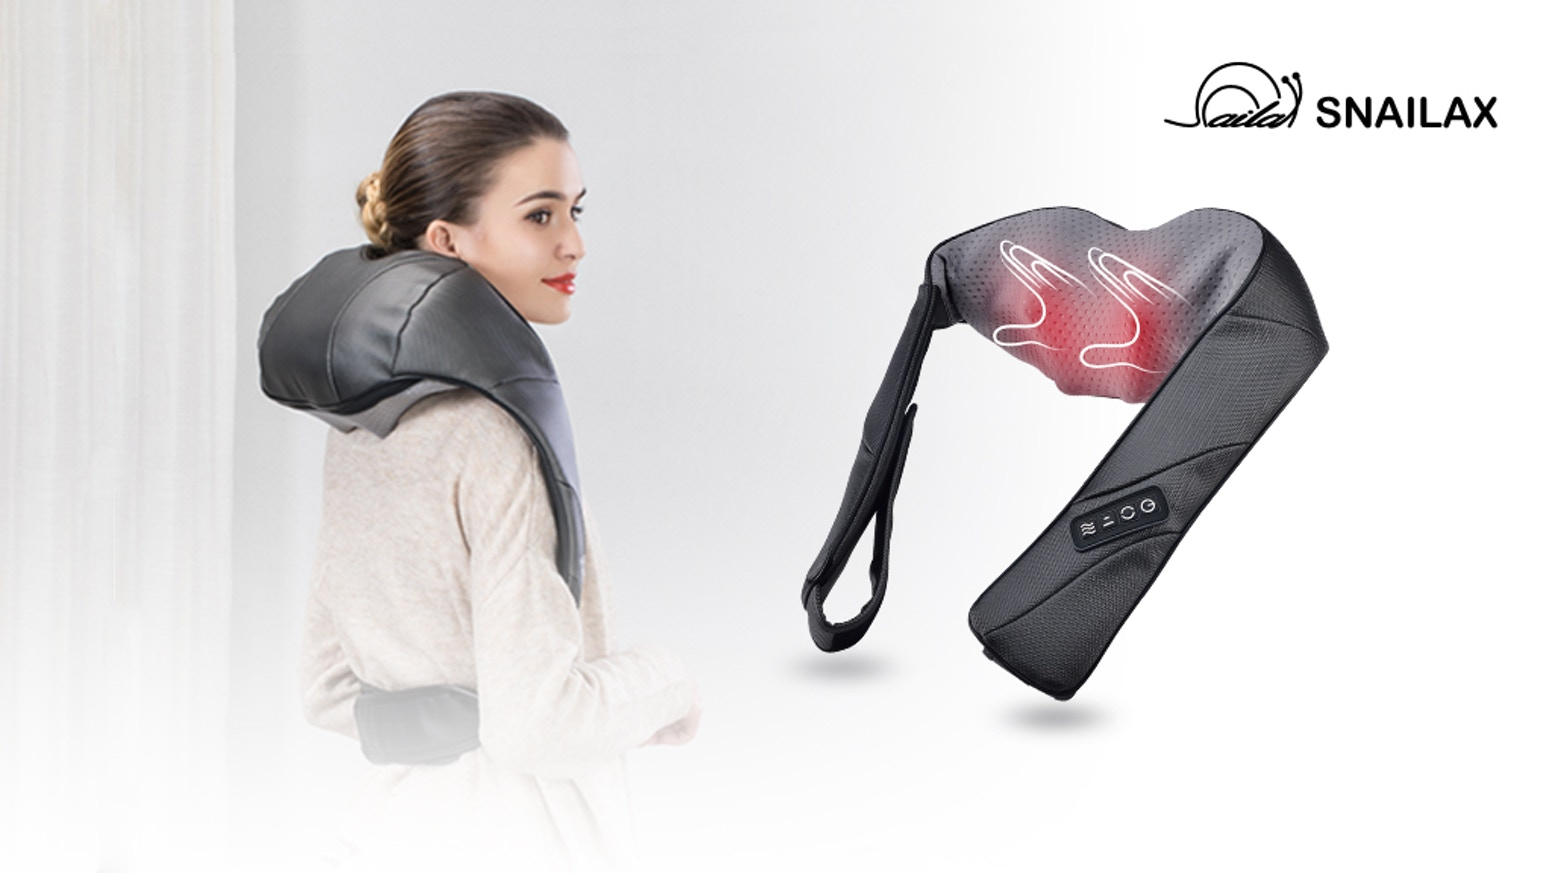 The massager can mimick vigorous penetration from a massager therapist hands to bring you a professional massage anywhere.